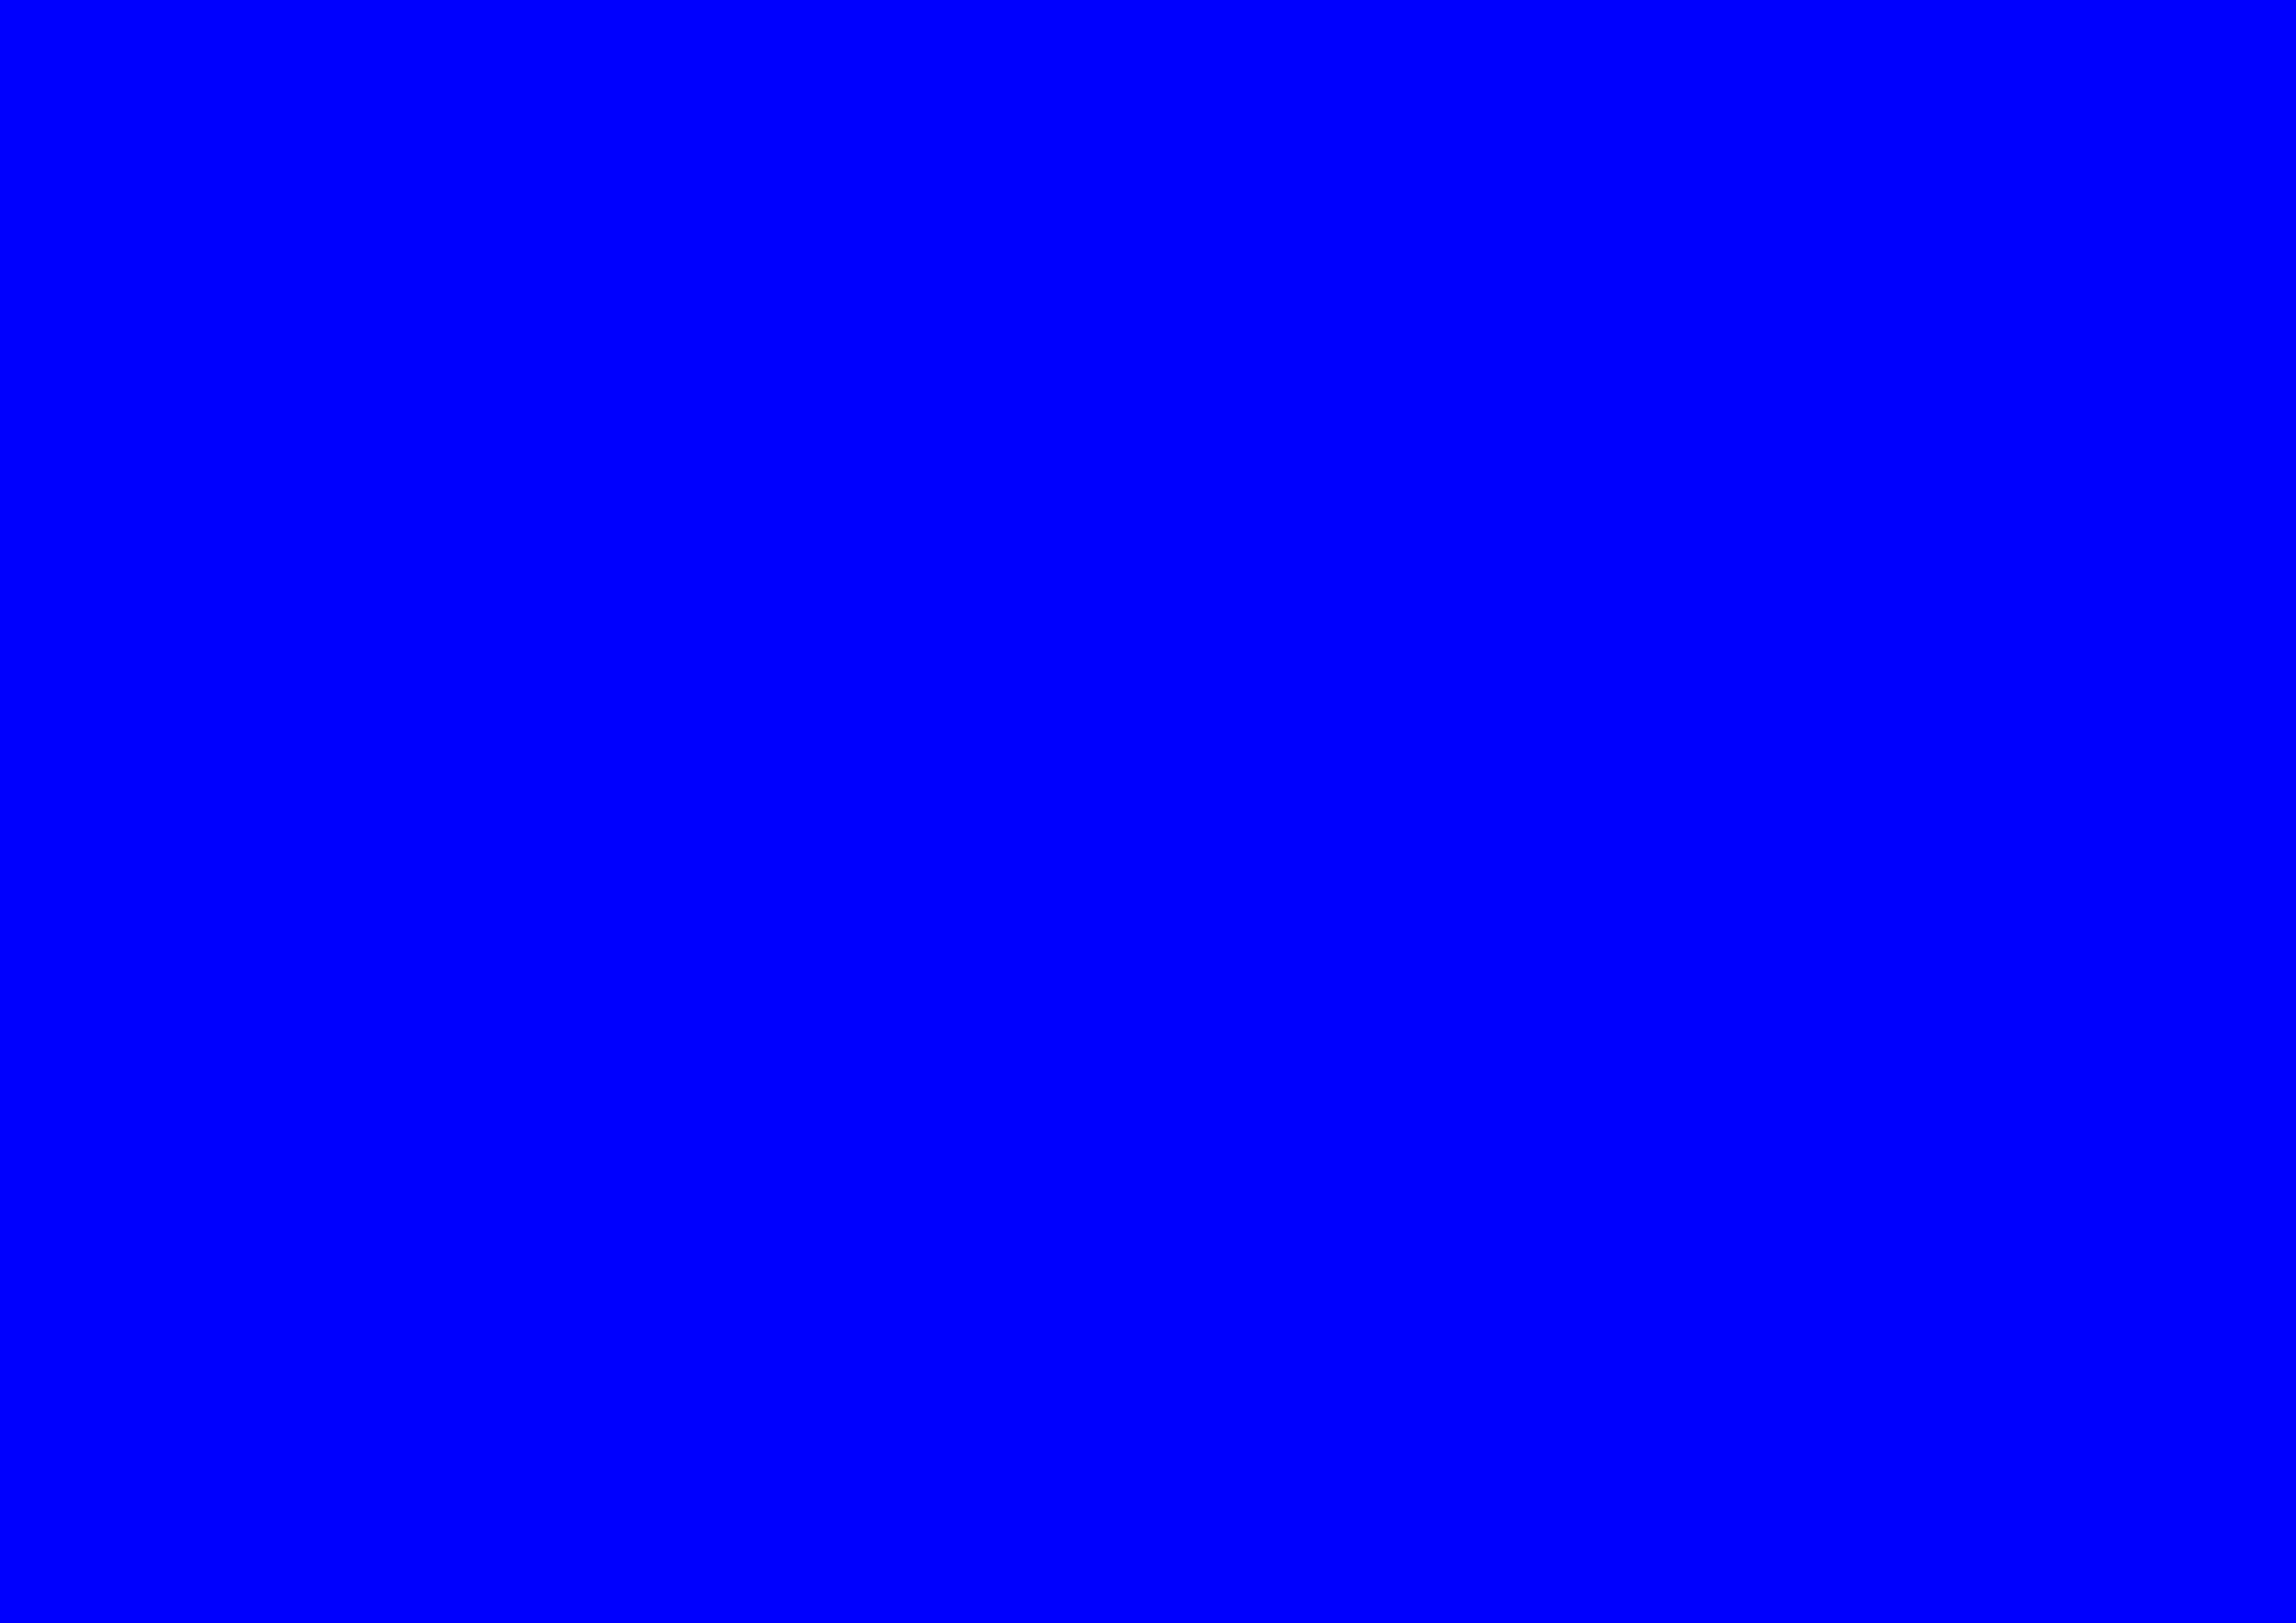 3508x2480 Blue Solid Color Background